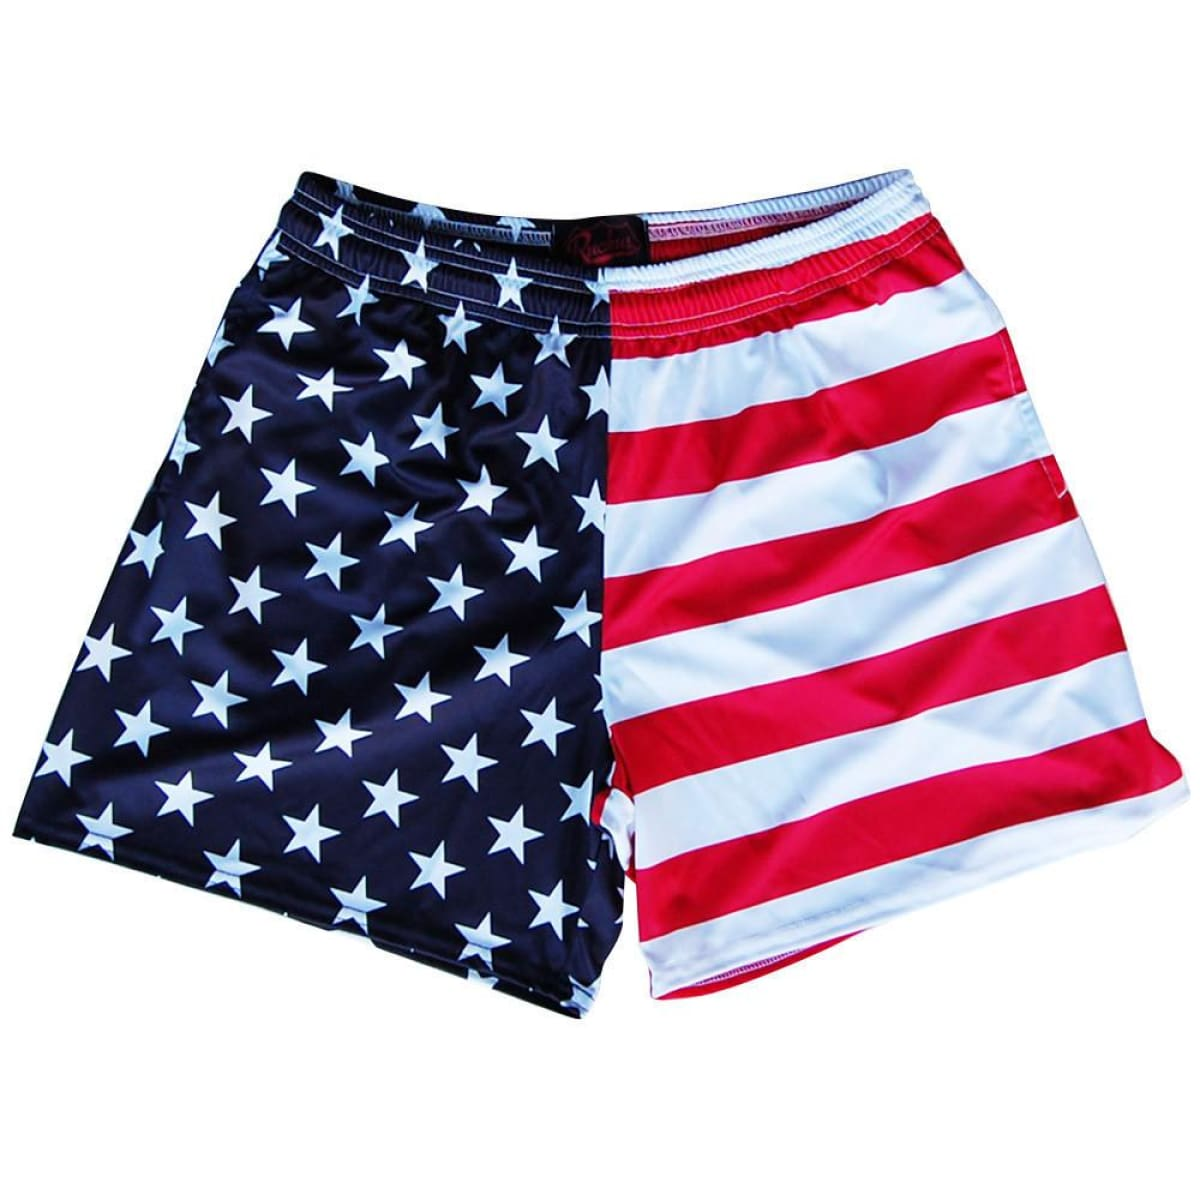 American Flag Jacks Rugby Shorts - Red White & Blue / Adult Small - Rugby Cut Training Shorts